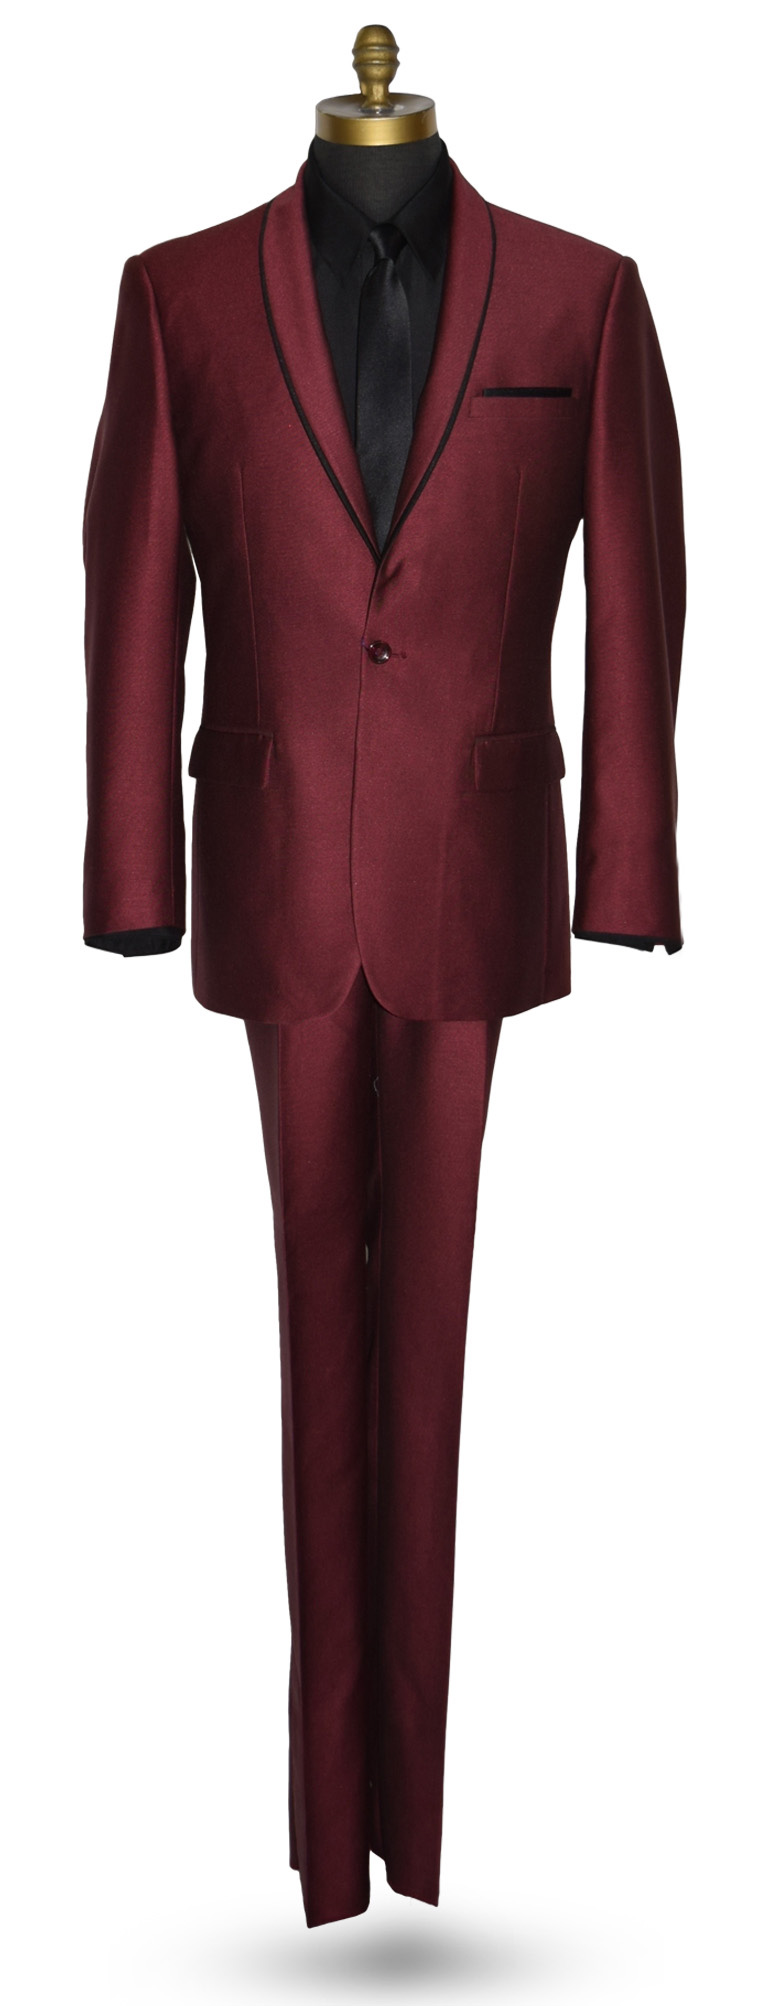 Burgundy Tuxedo Coat and Pants Set